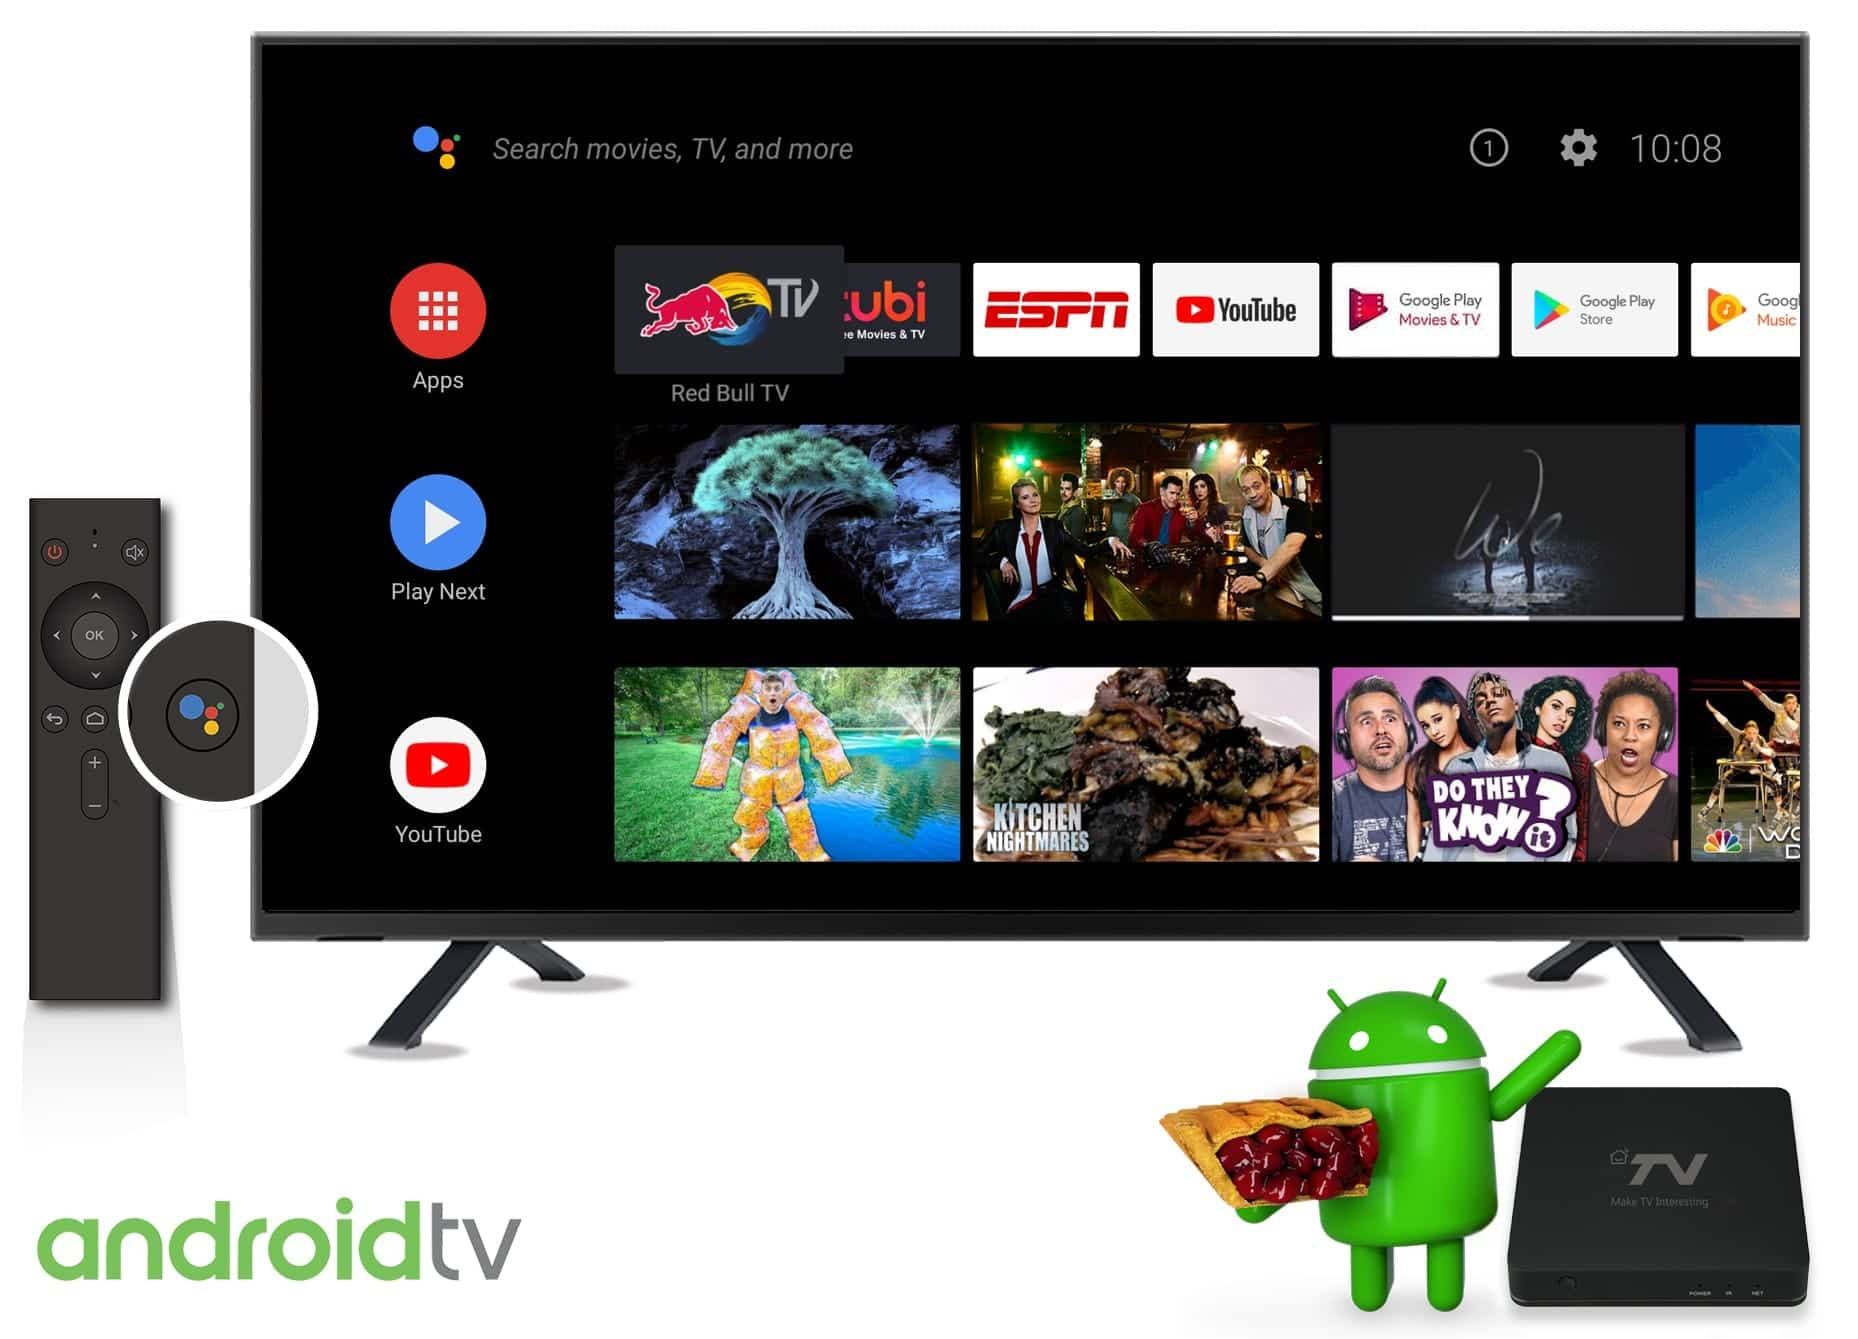 SDMC Showcases Android TV STB Running Android 9 Pie